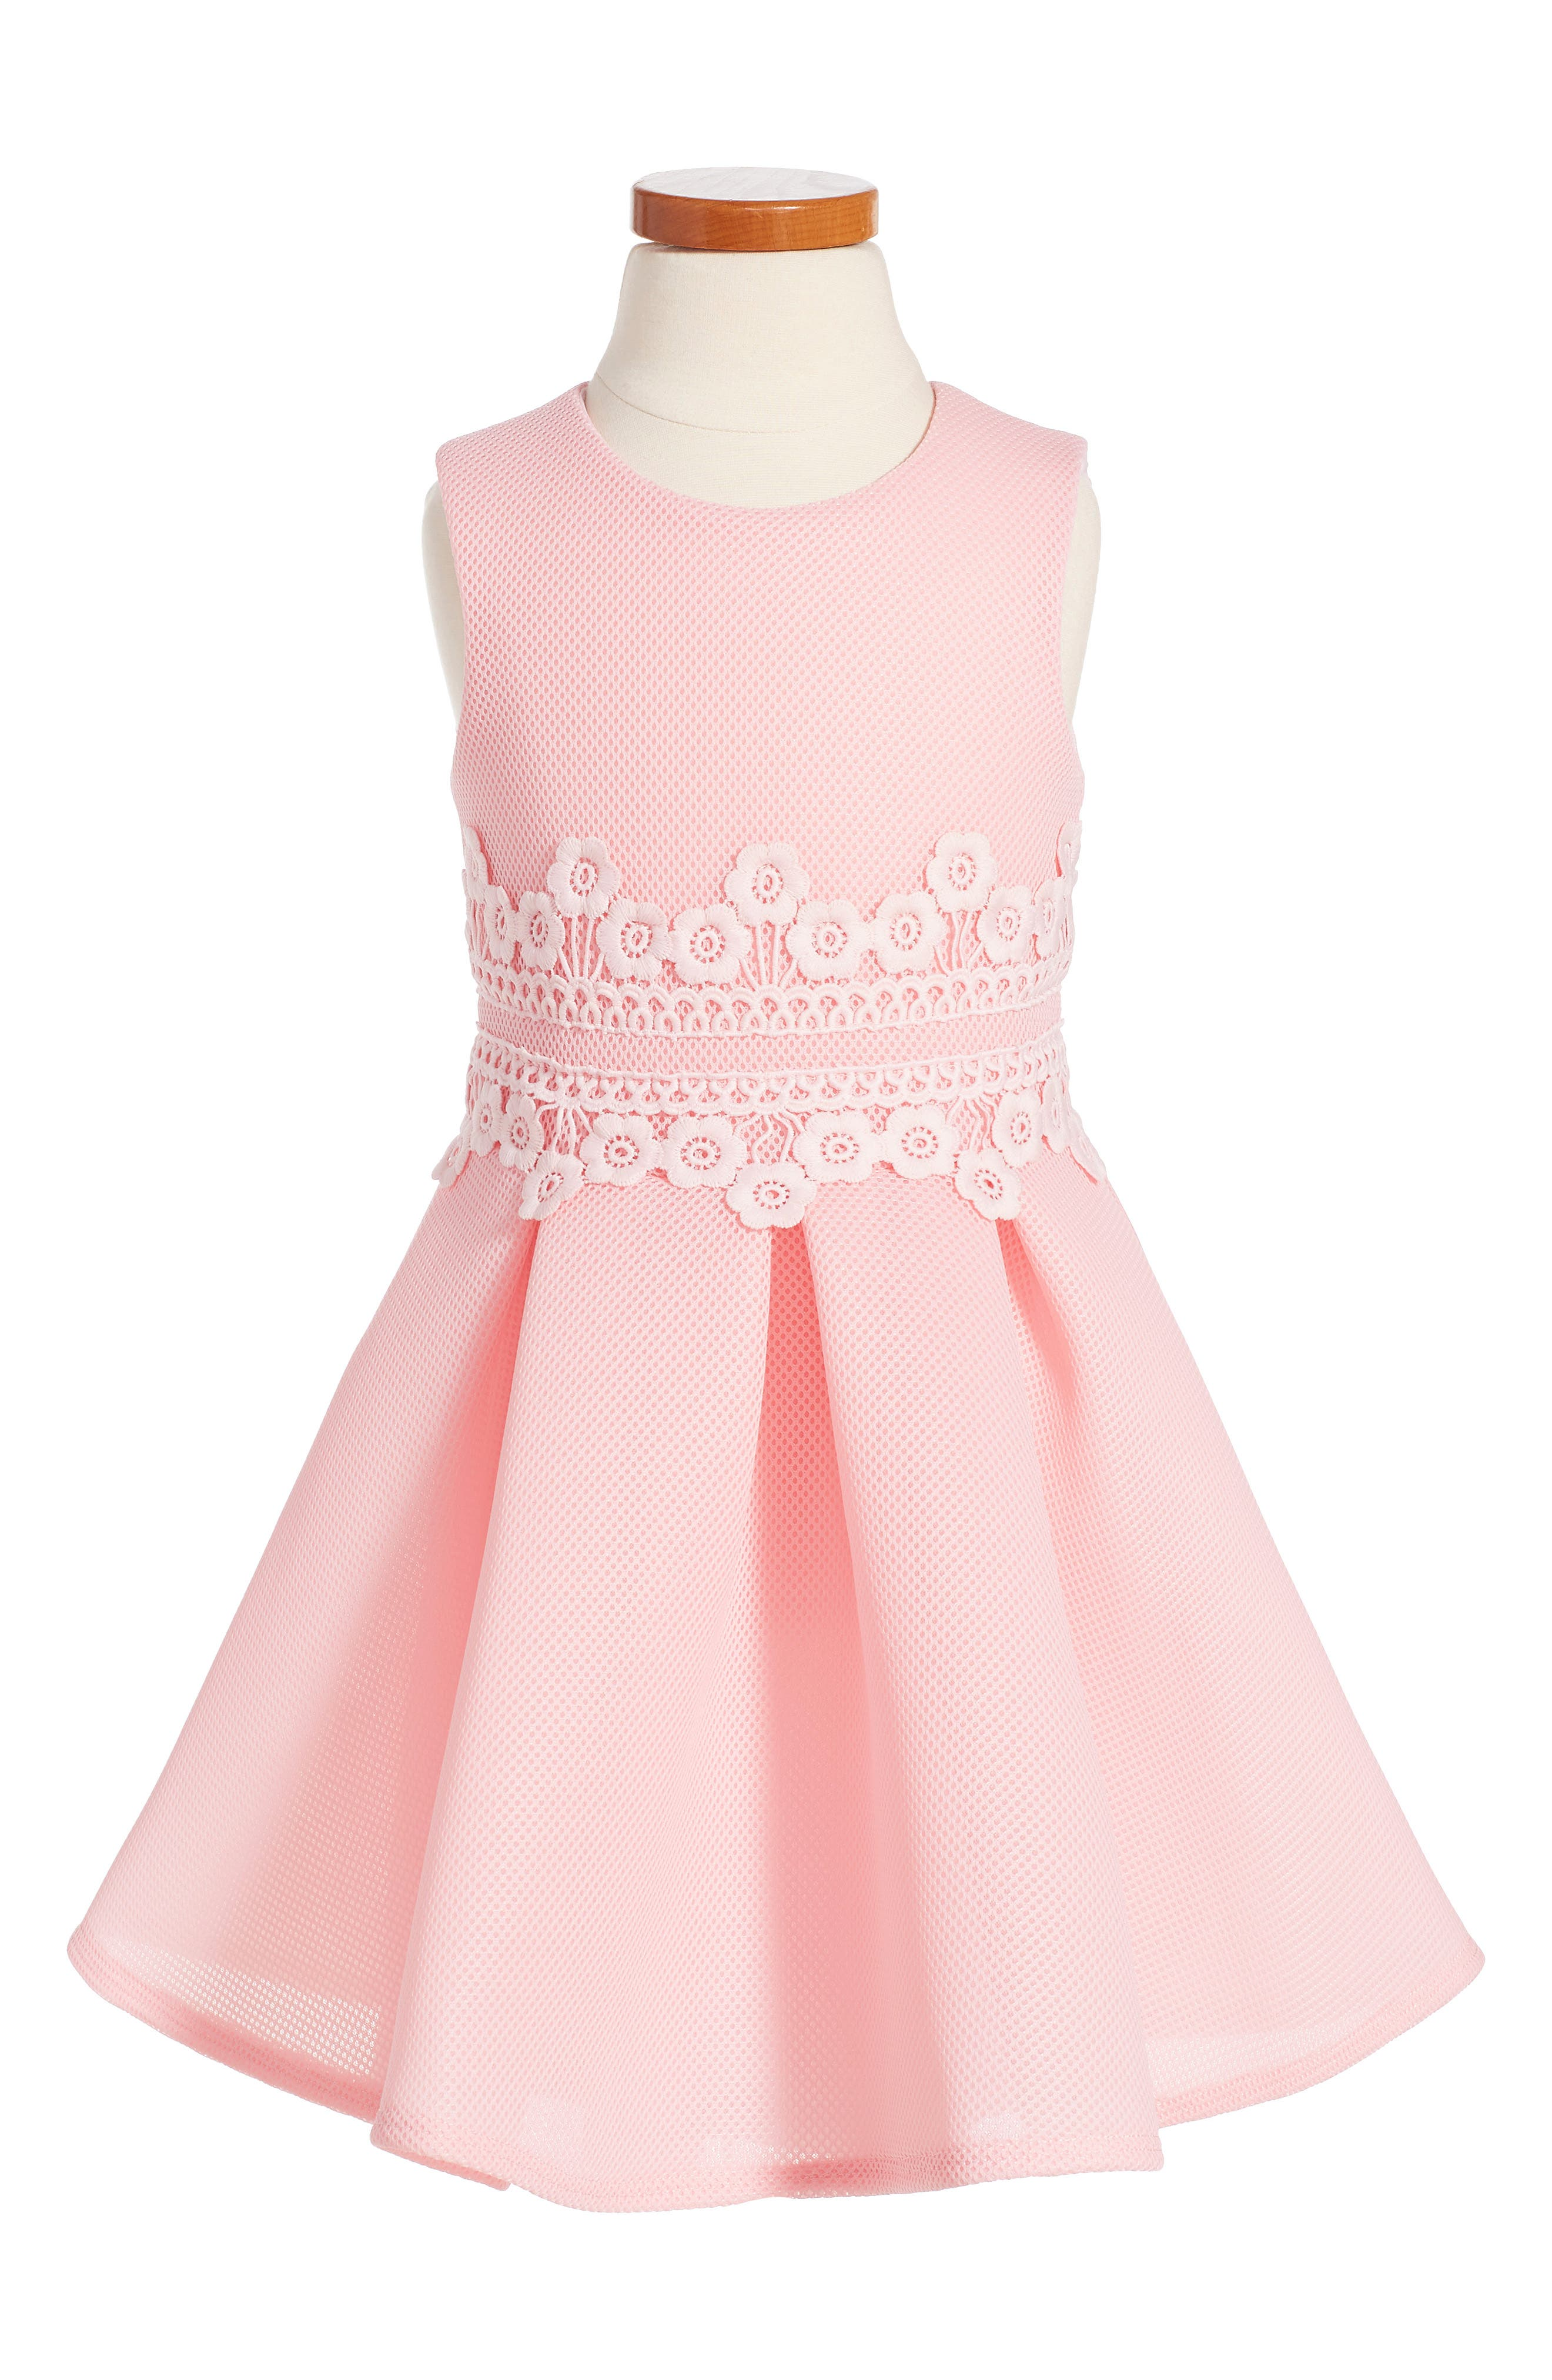 DAVID CHARLES Lace Fit & Flare Dress